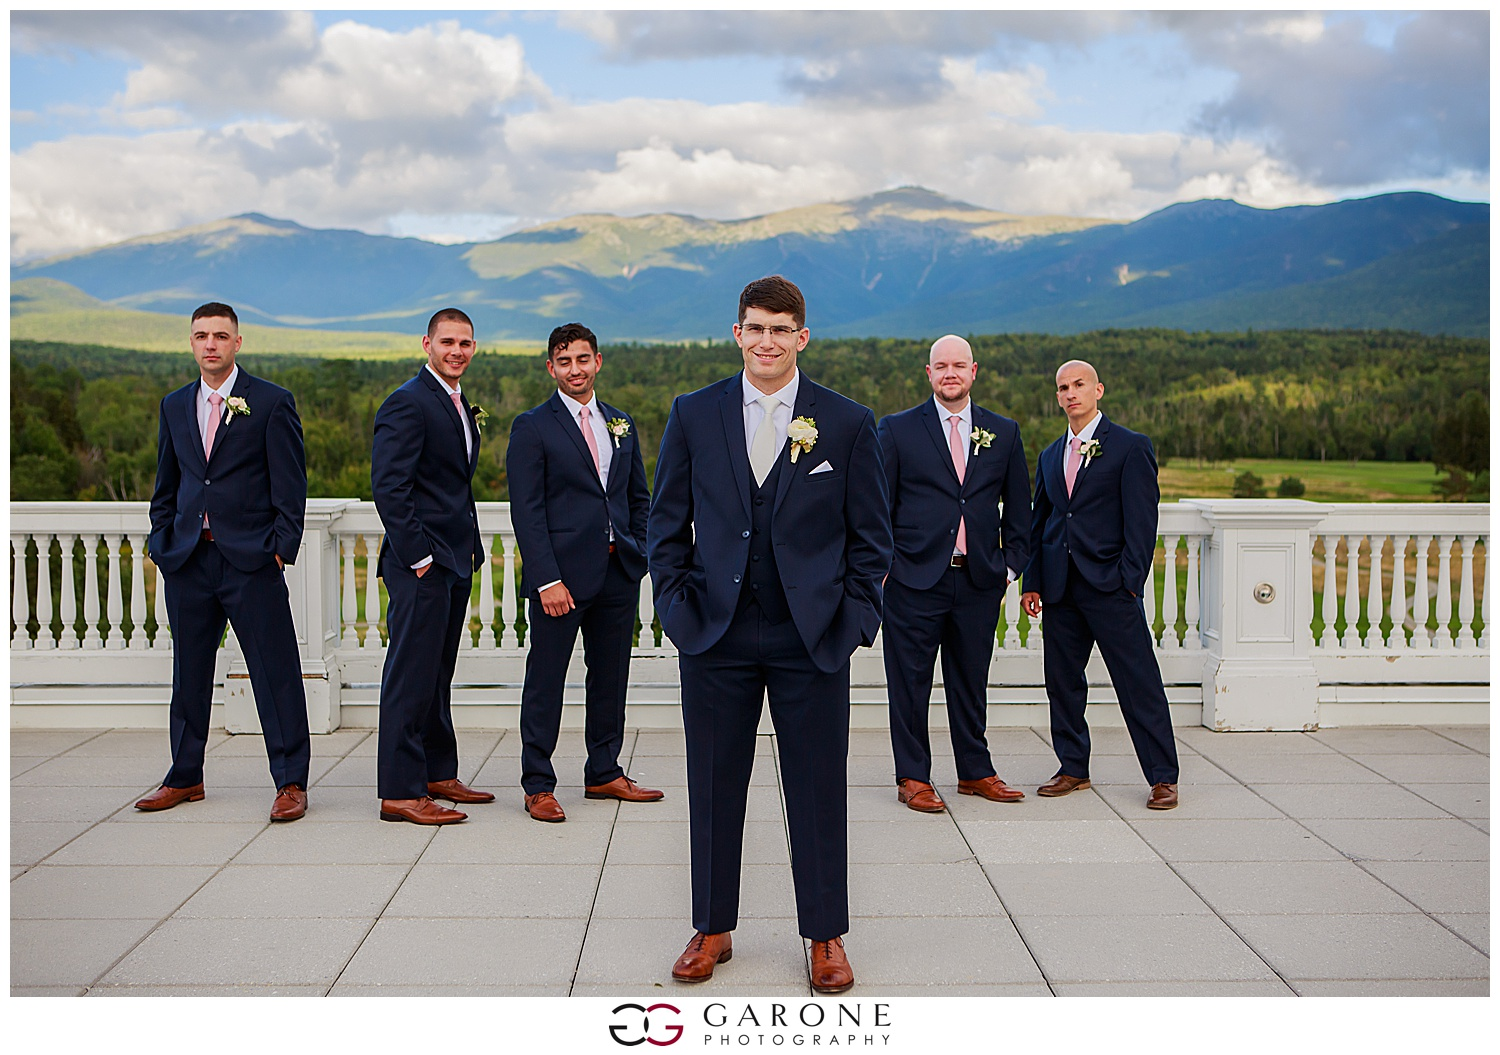 Omni_Mount_Washington_hotel_Wedding_White_Mountain_Wedding_Garone_Photography_0027.jpg